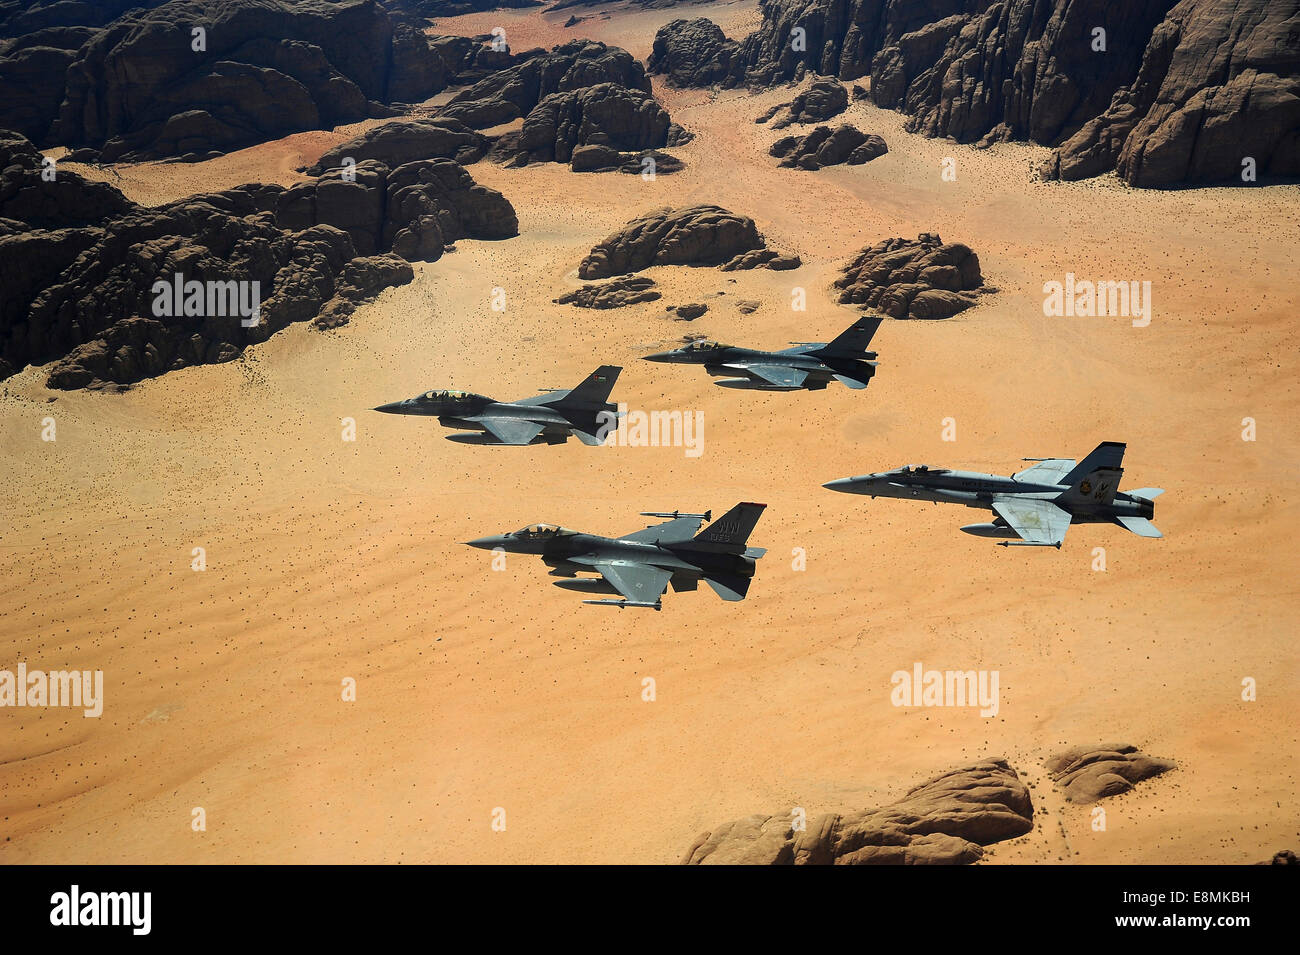 May 13, 2014 - F-16 Fighting Falcons from the U.S. and Royal Jordanian Air Forces, along with an F-18 Hornet from - Stock Image